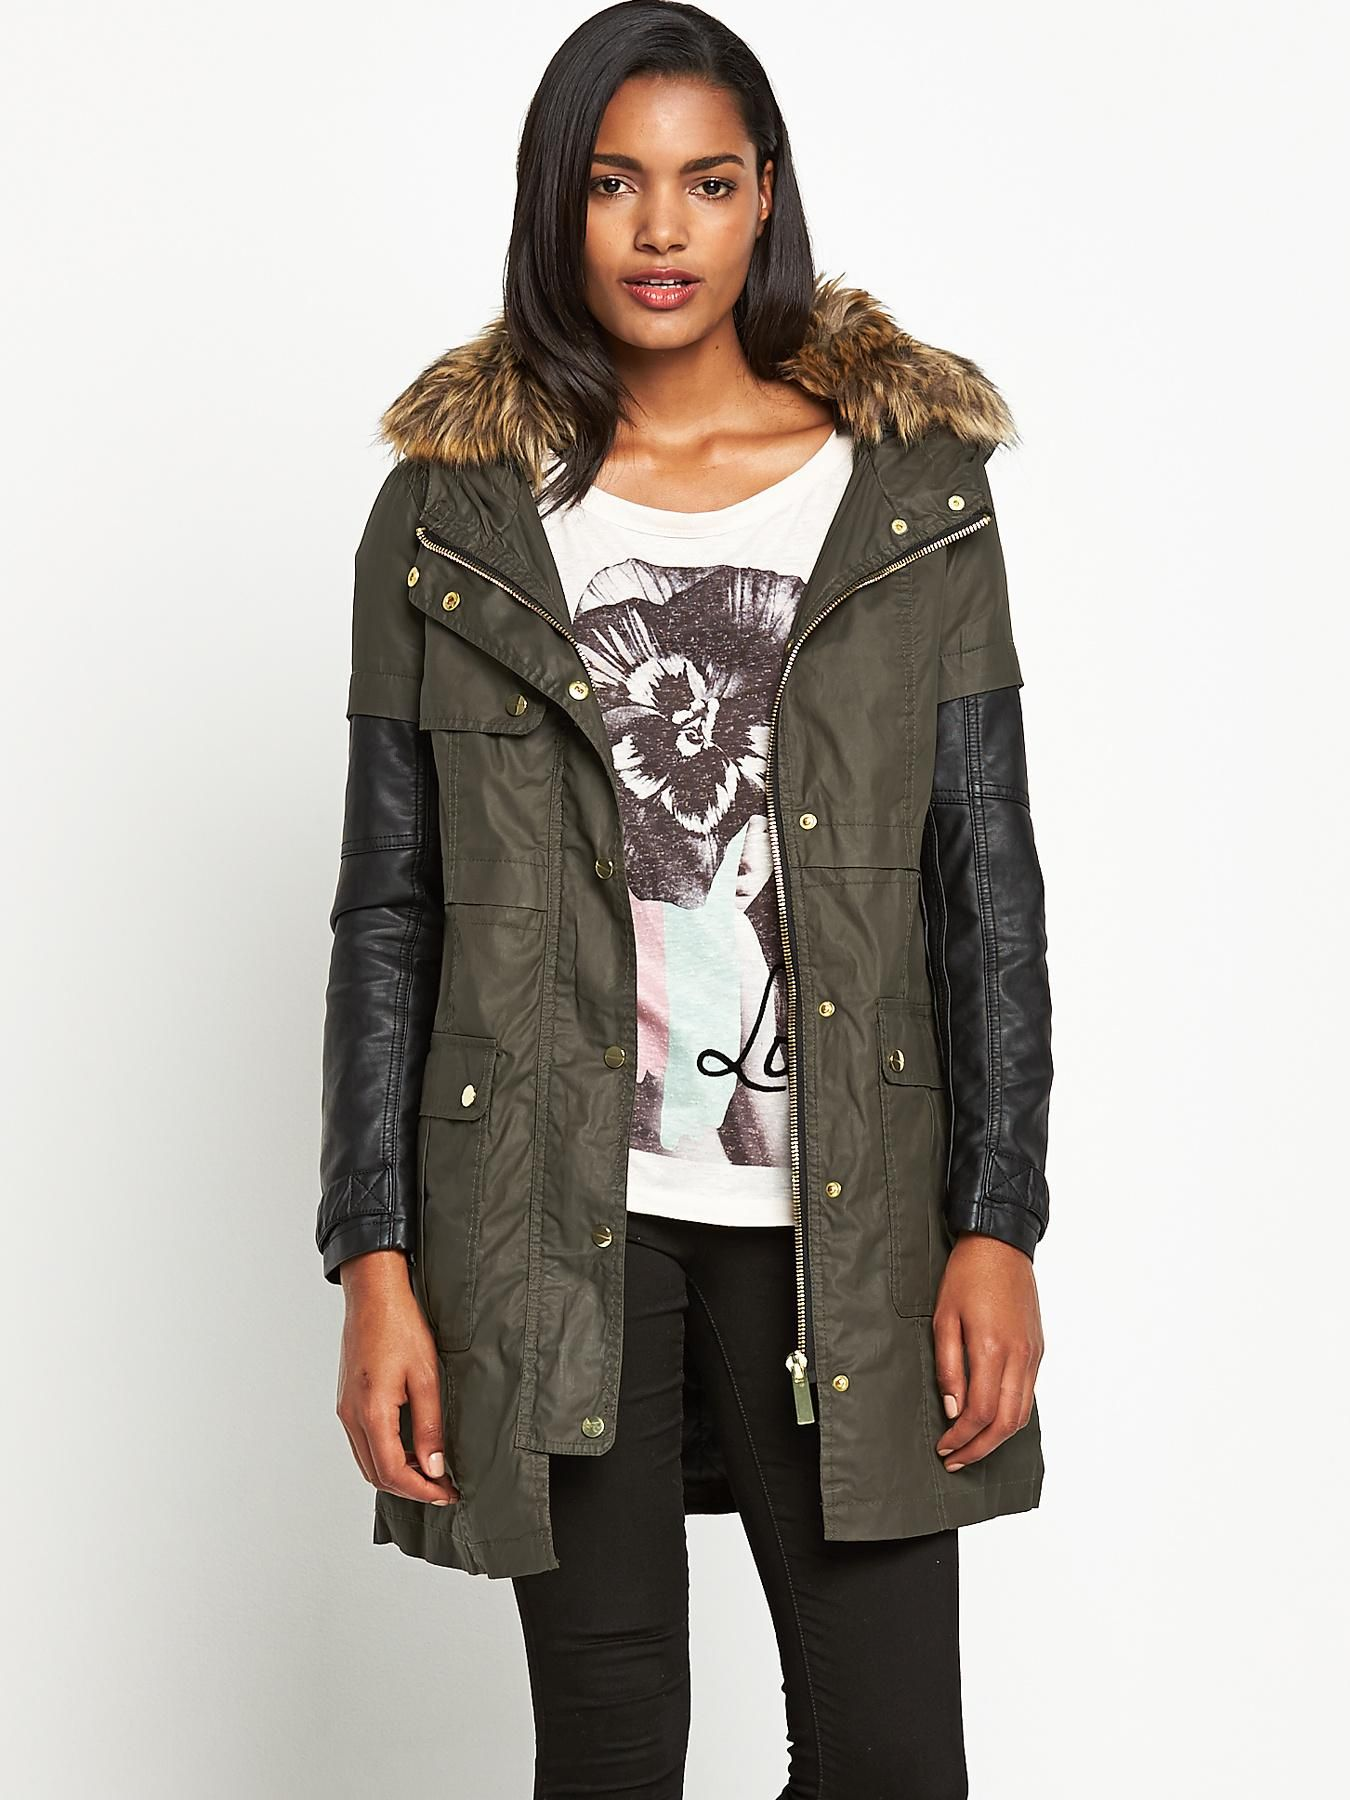 River island wax parka coat